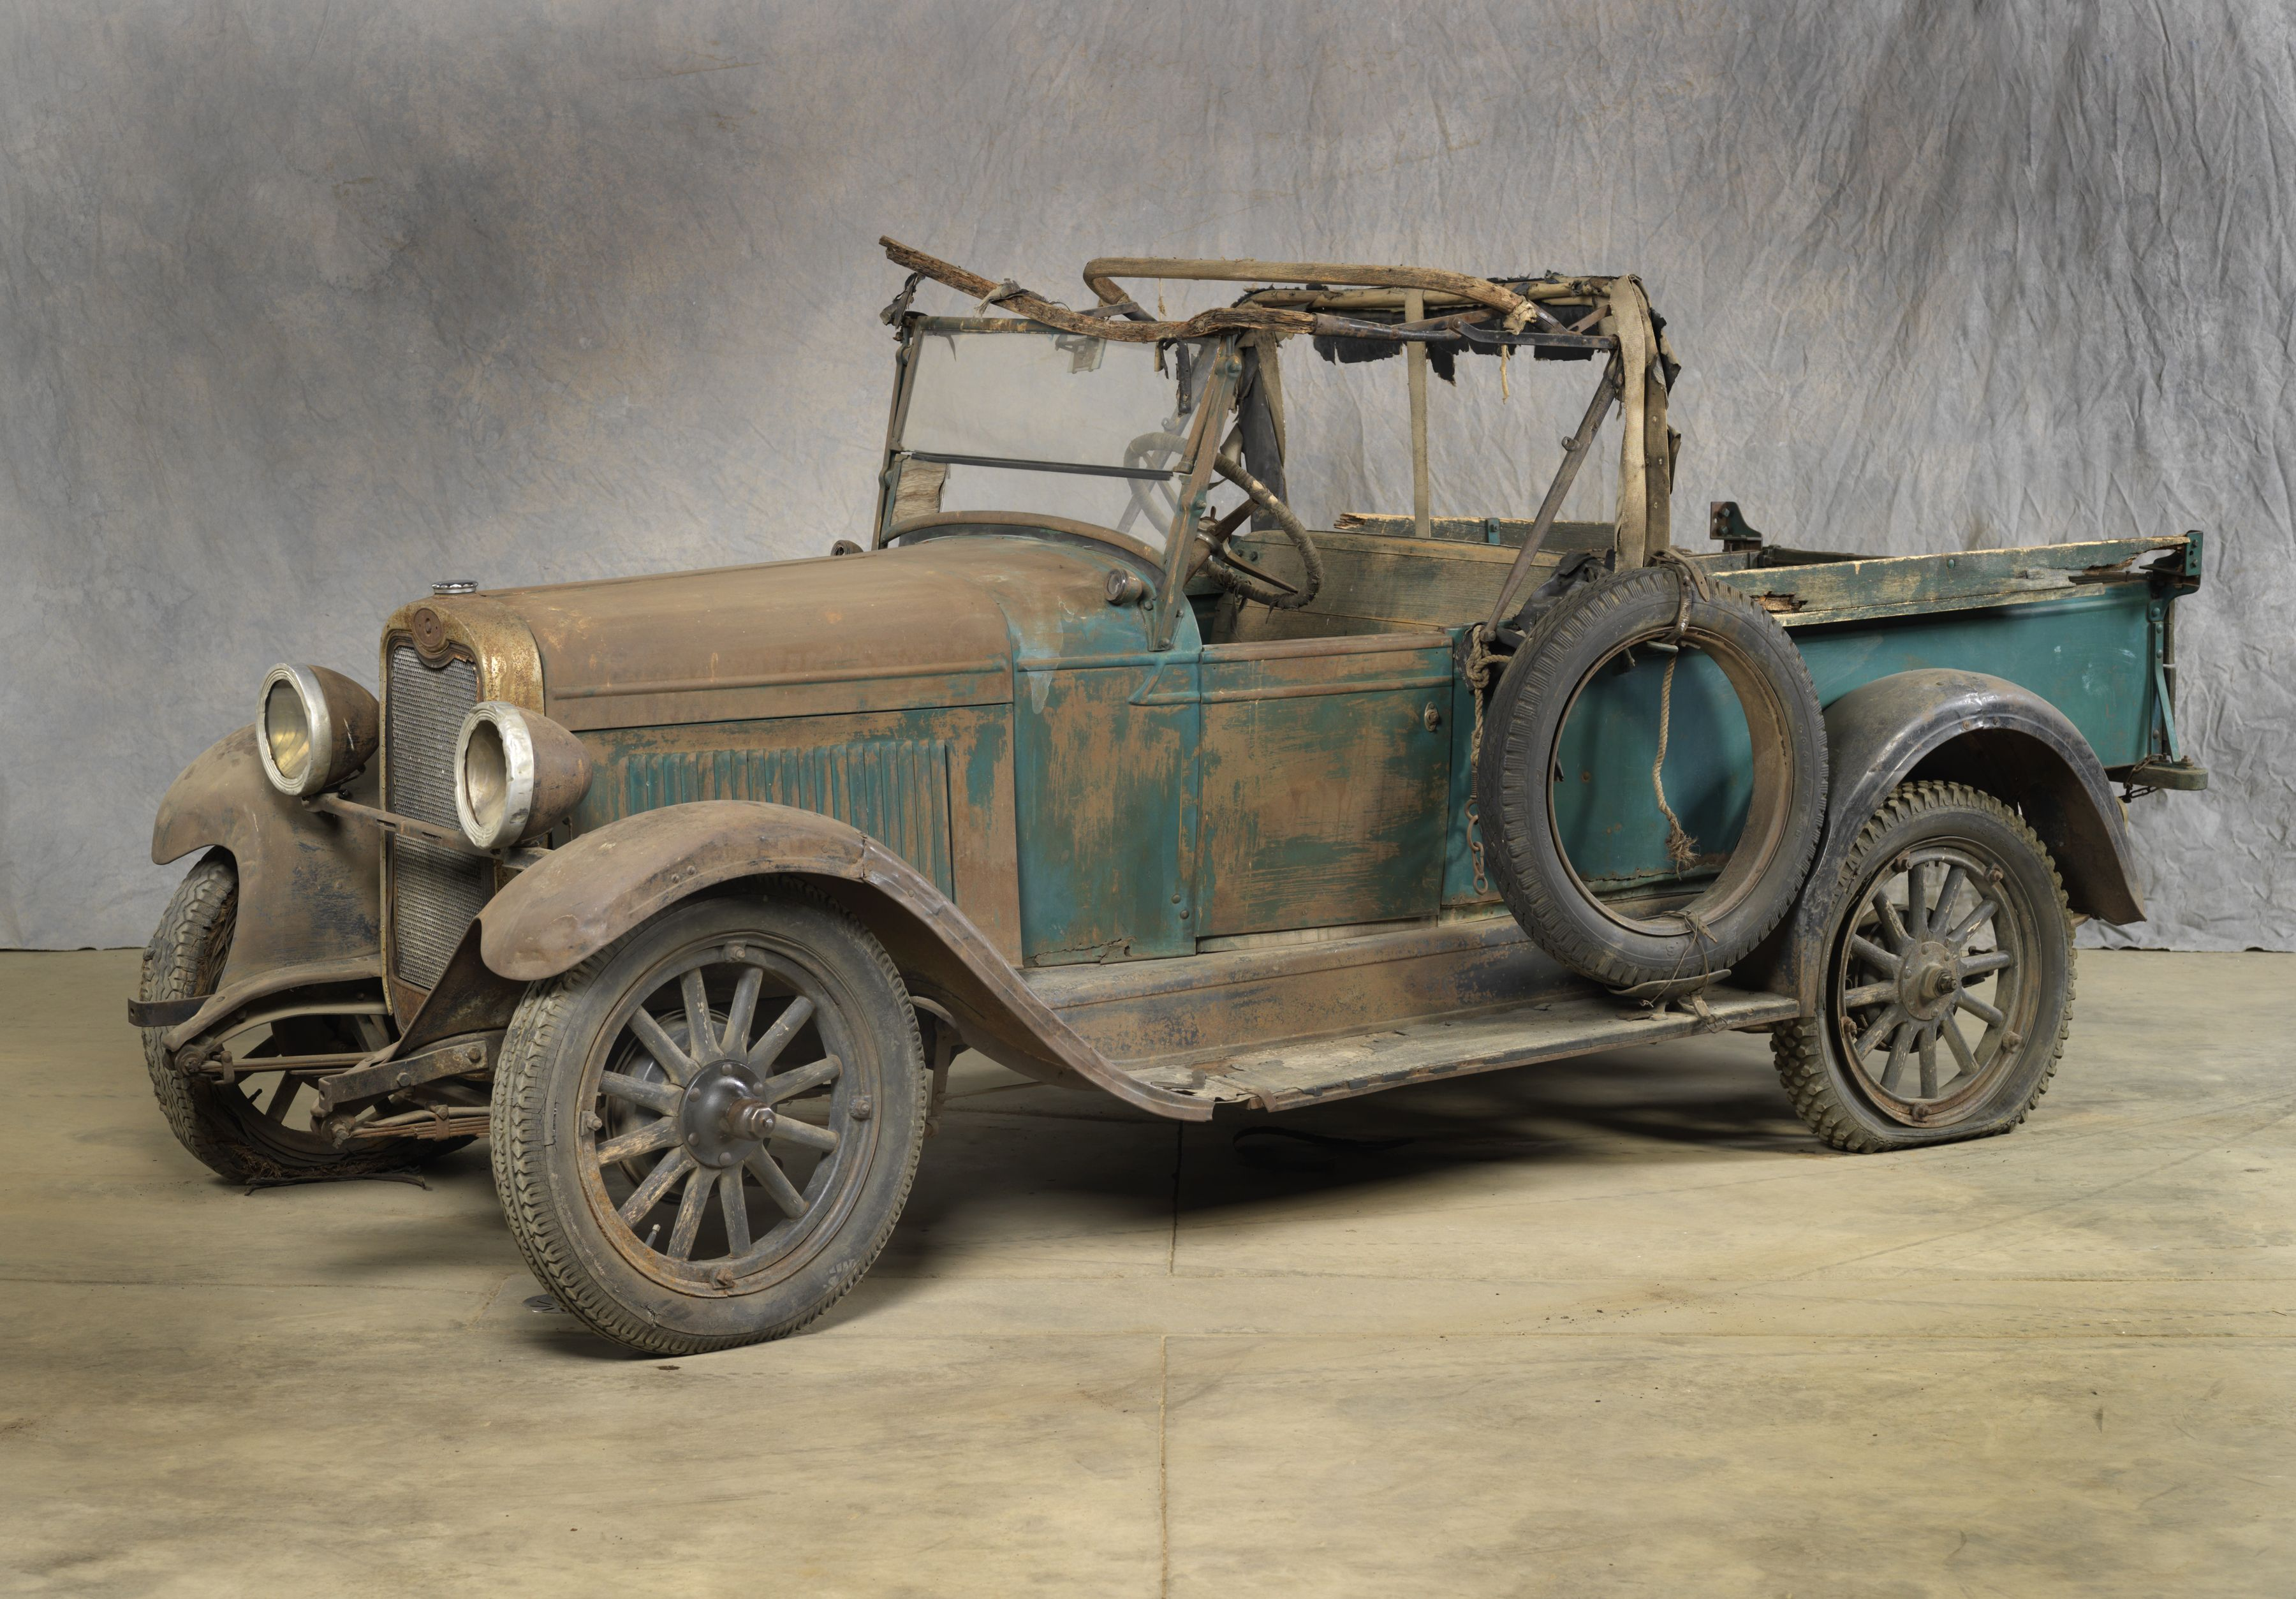 1928 CHEVROLET NATIONAL SERIES AB ROADSTER EXPRESS: This vehicle has ...